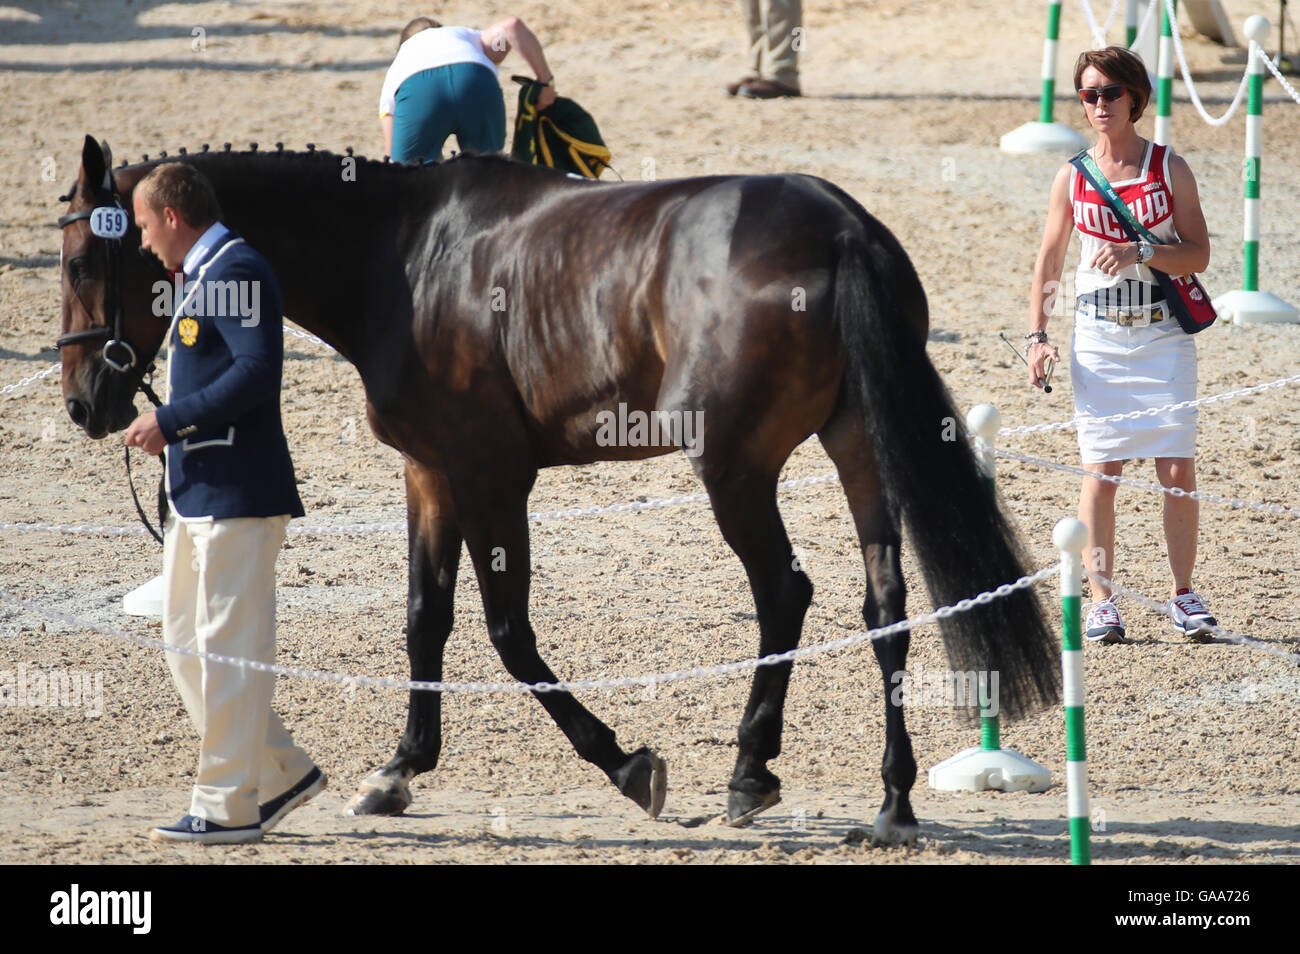 Deodoro, Rio de Janeiro, Brazil. 05th Aug, 2016. Rider Bettina Hoy (R) of Germany, personal coach of Aleksandr Markov Stock Photo